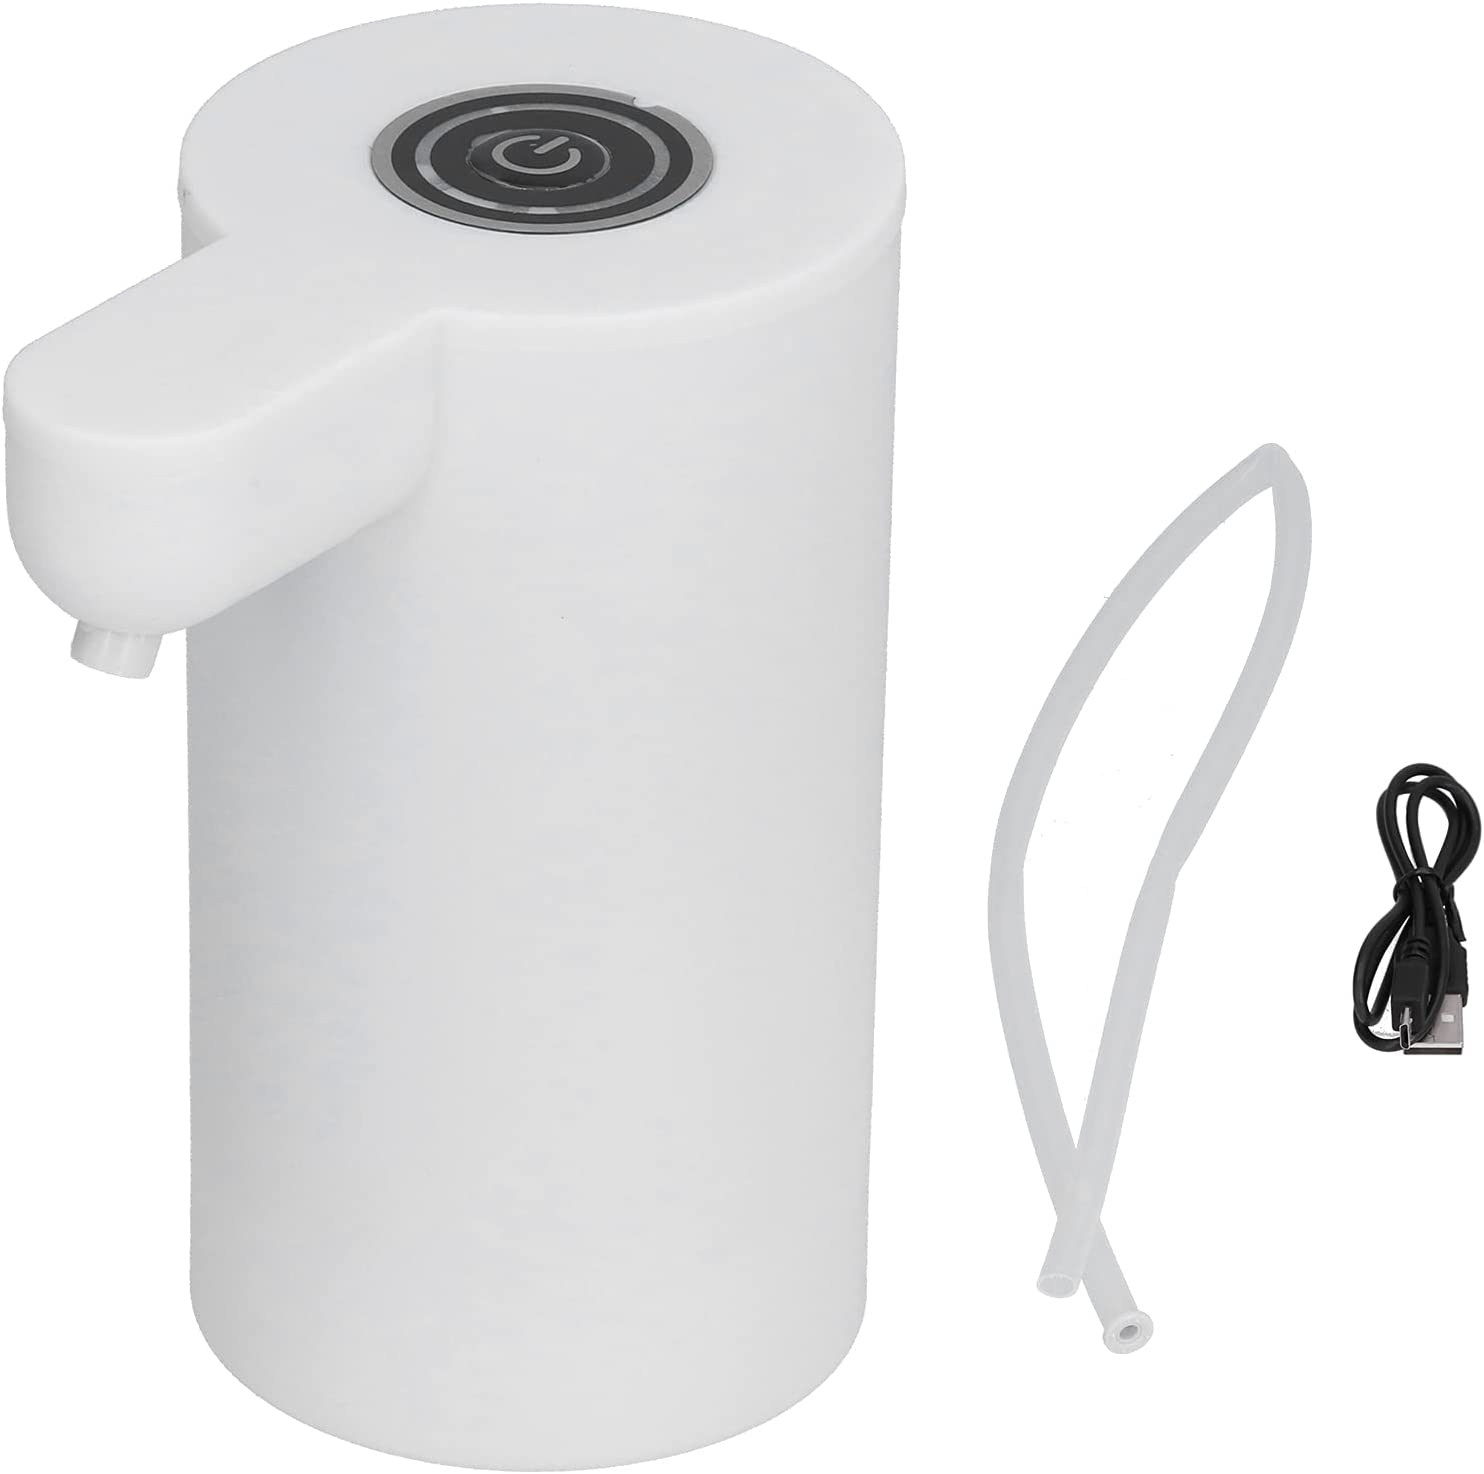 Water Dispenser Portable Bottle Pump Grade Mater Food Limited price sale ABS Long Beach Mall